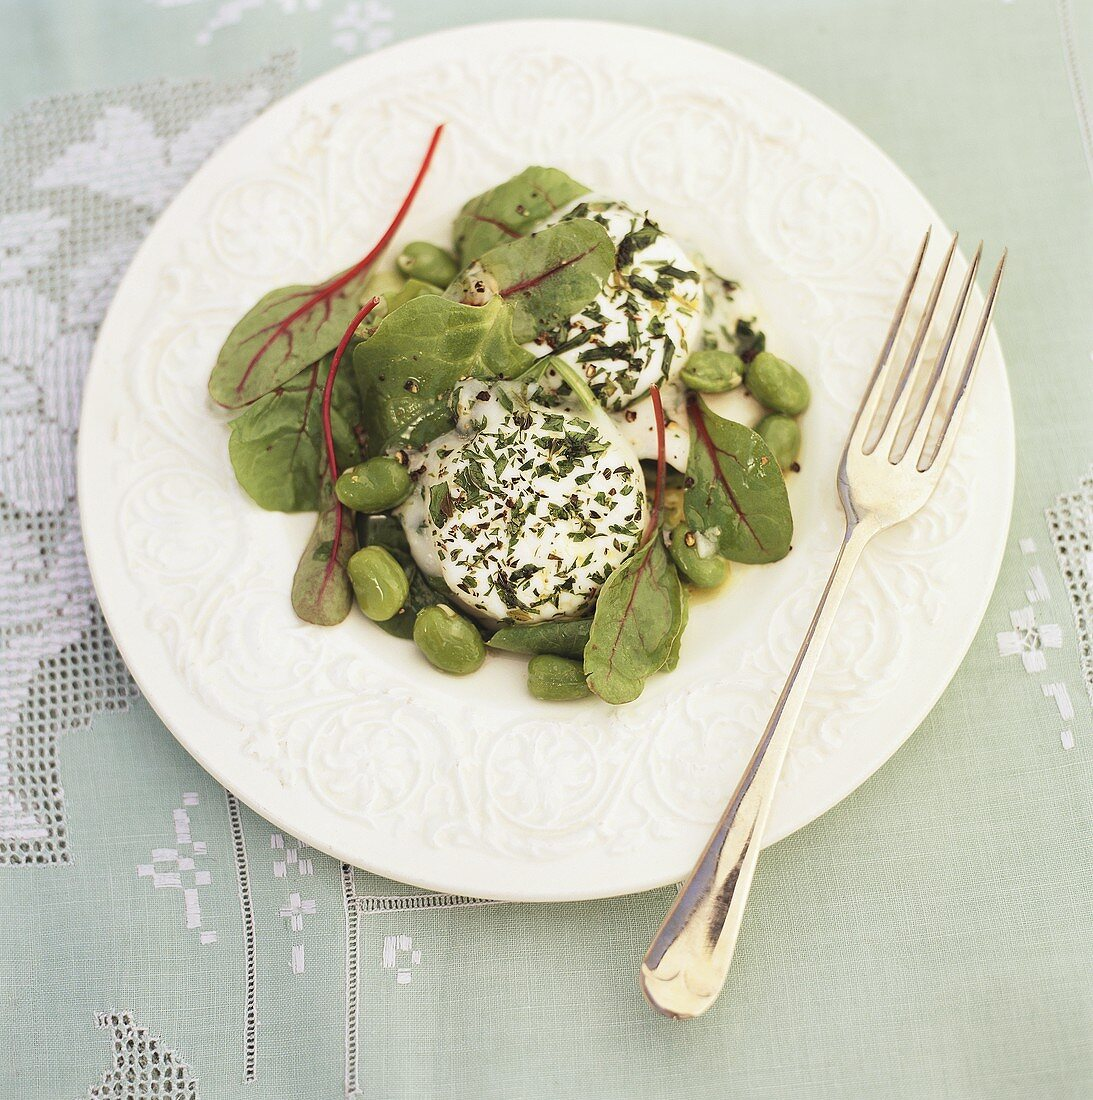 Spinach salad with beans and herb yoghurt dressing